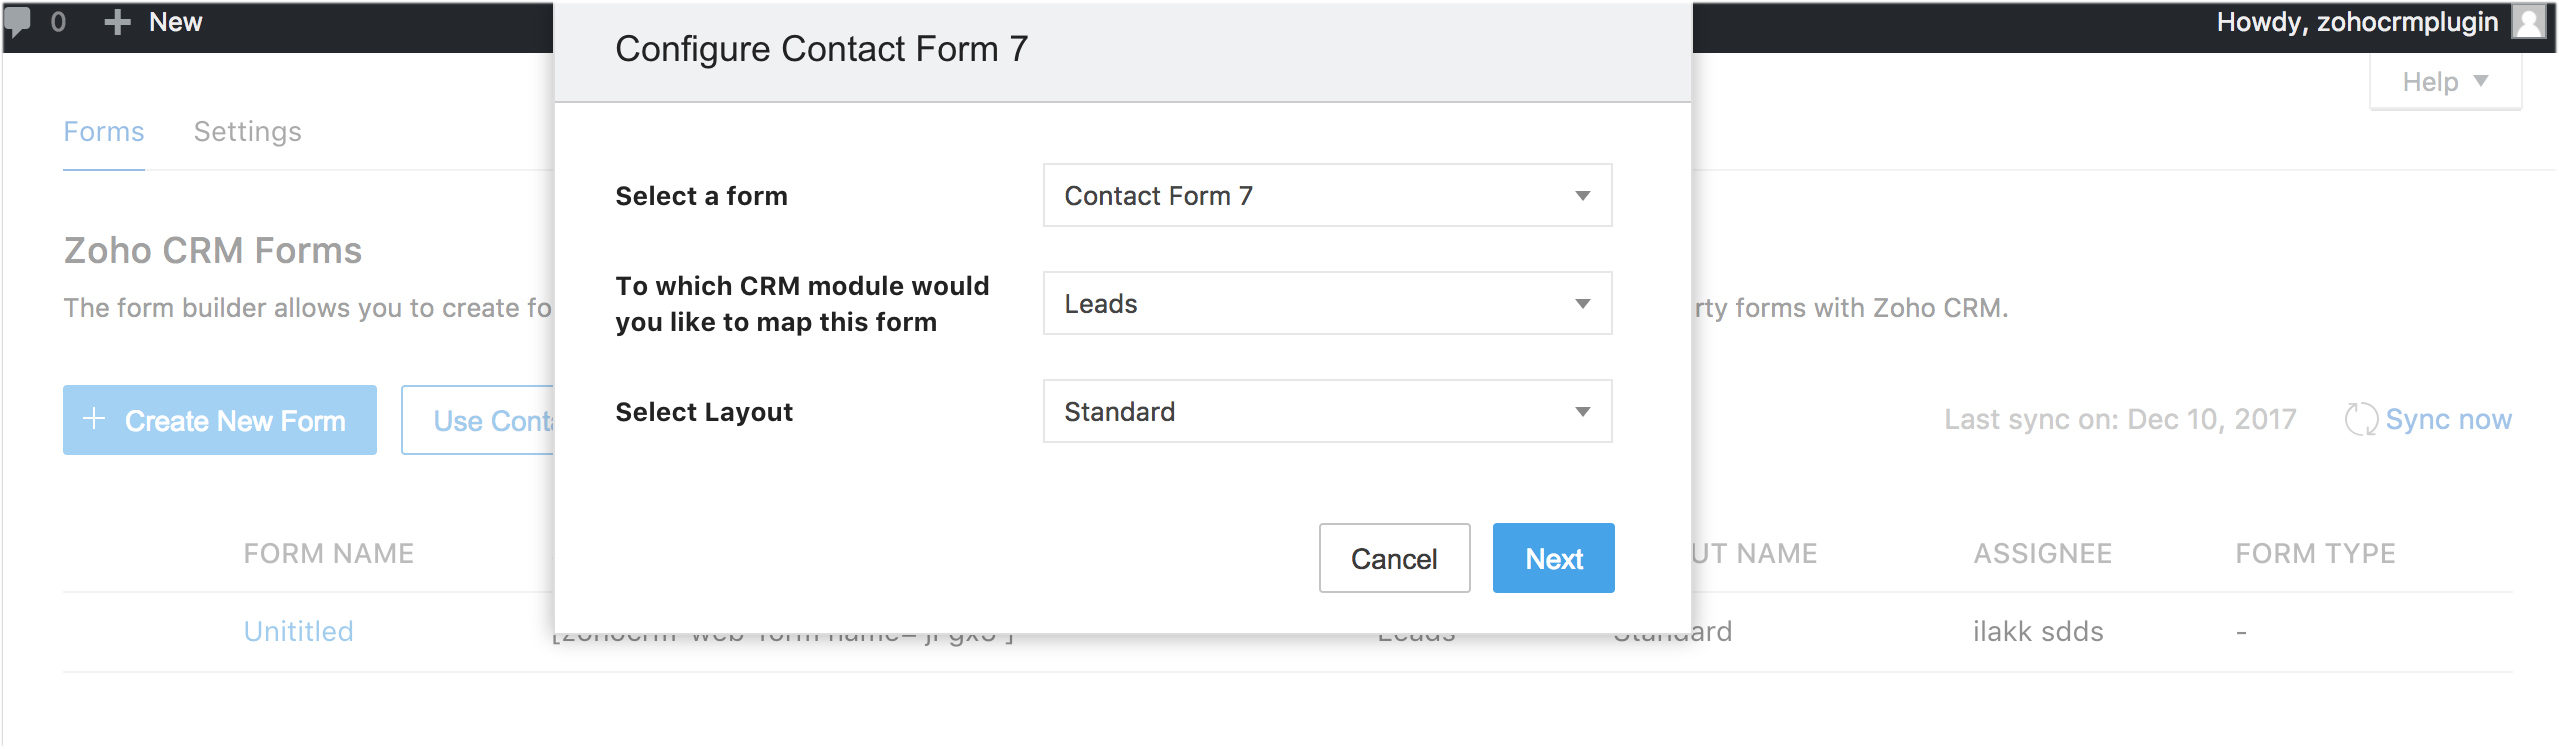 Configuring Contact Form 7